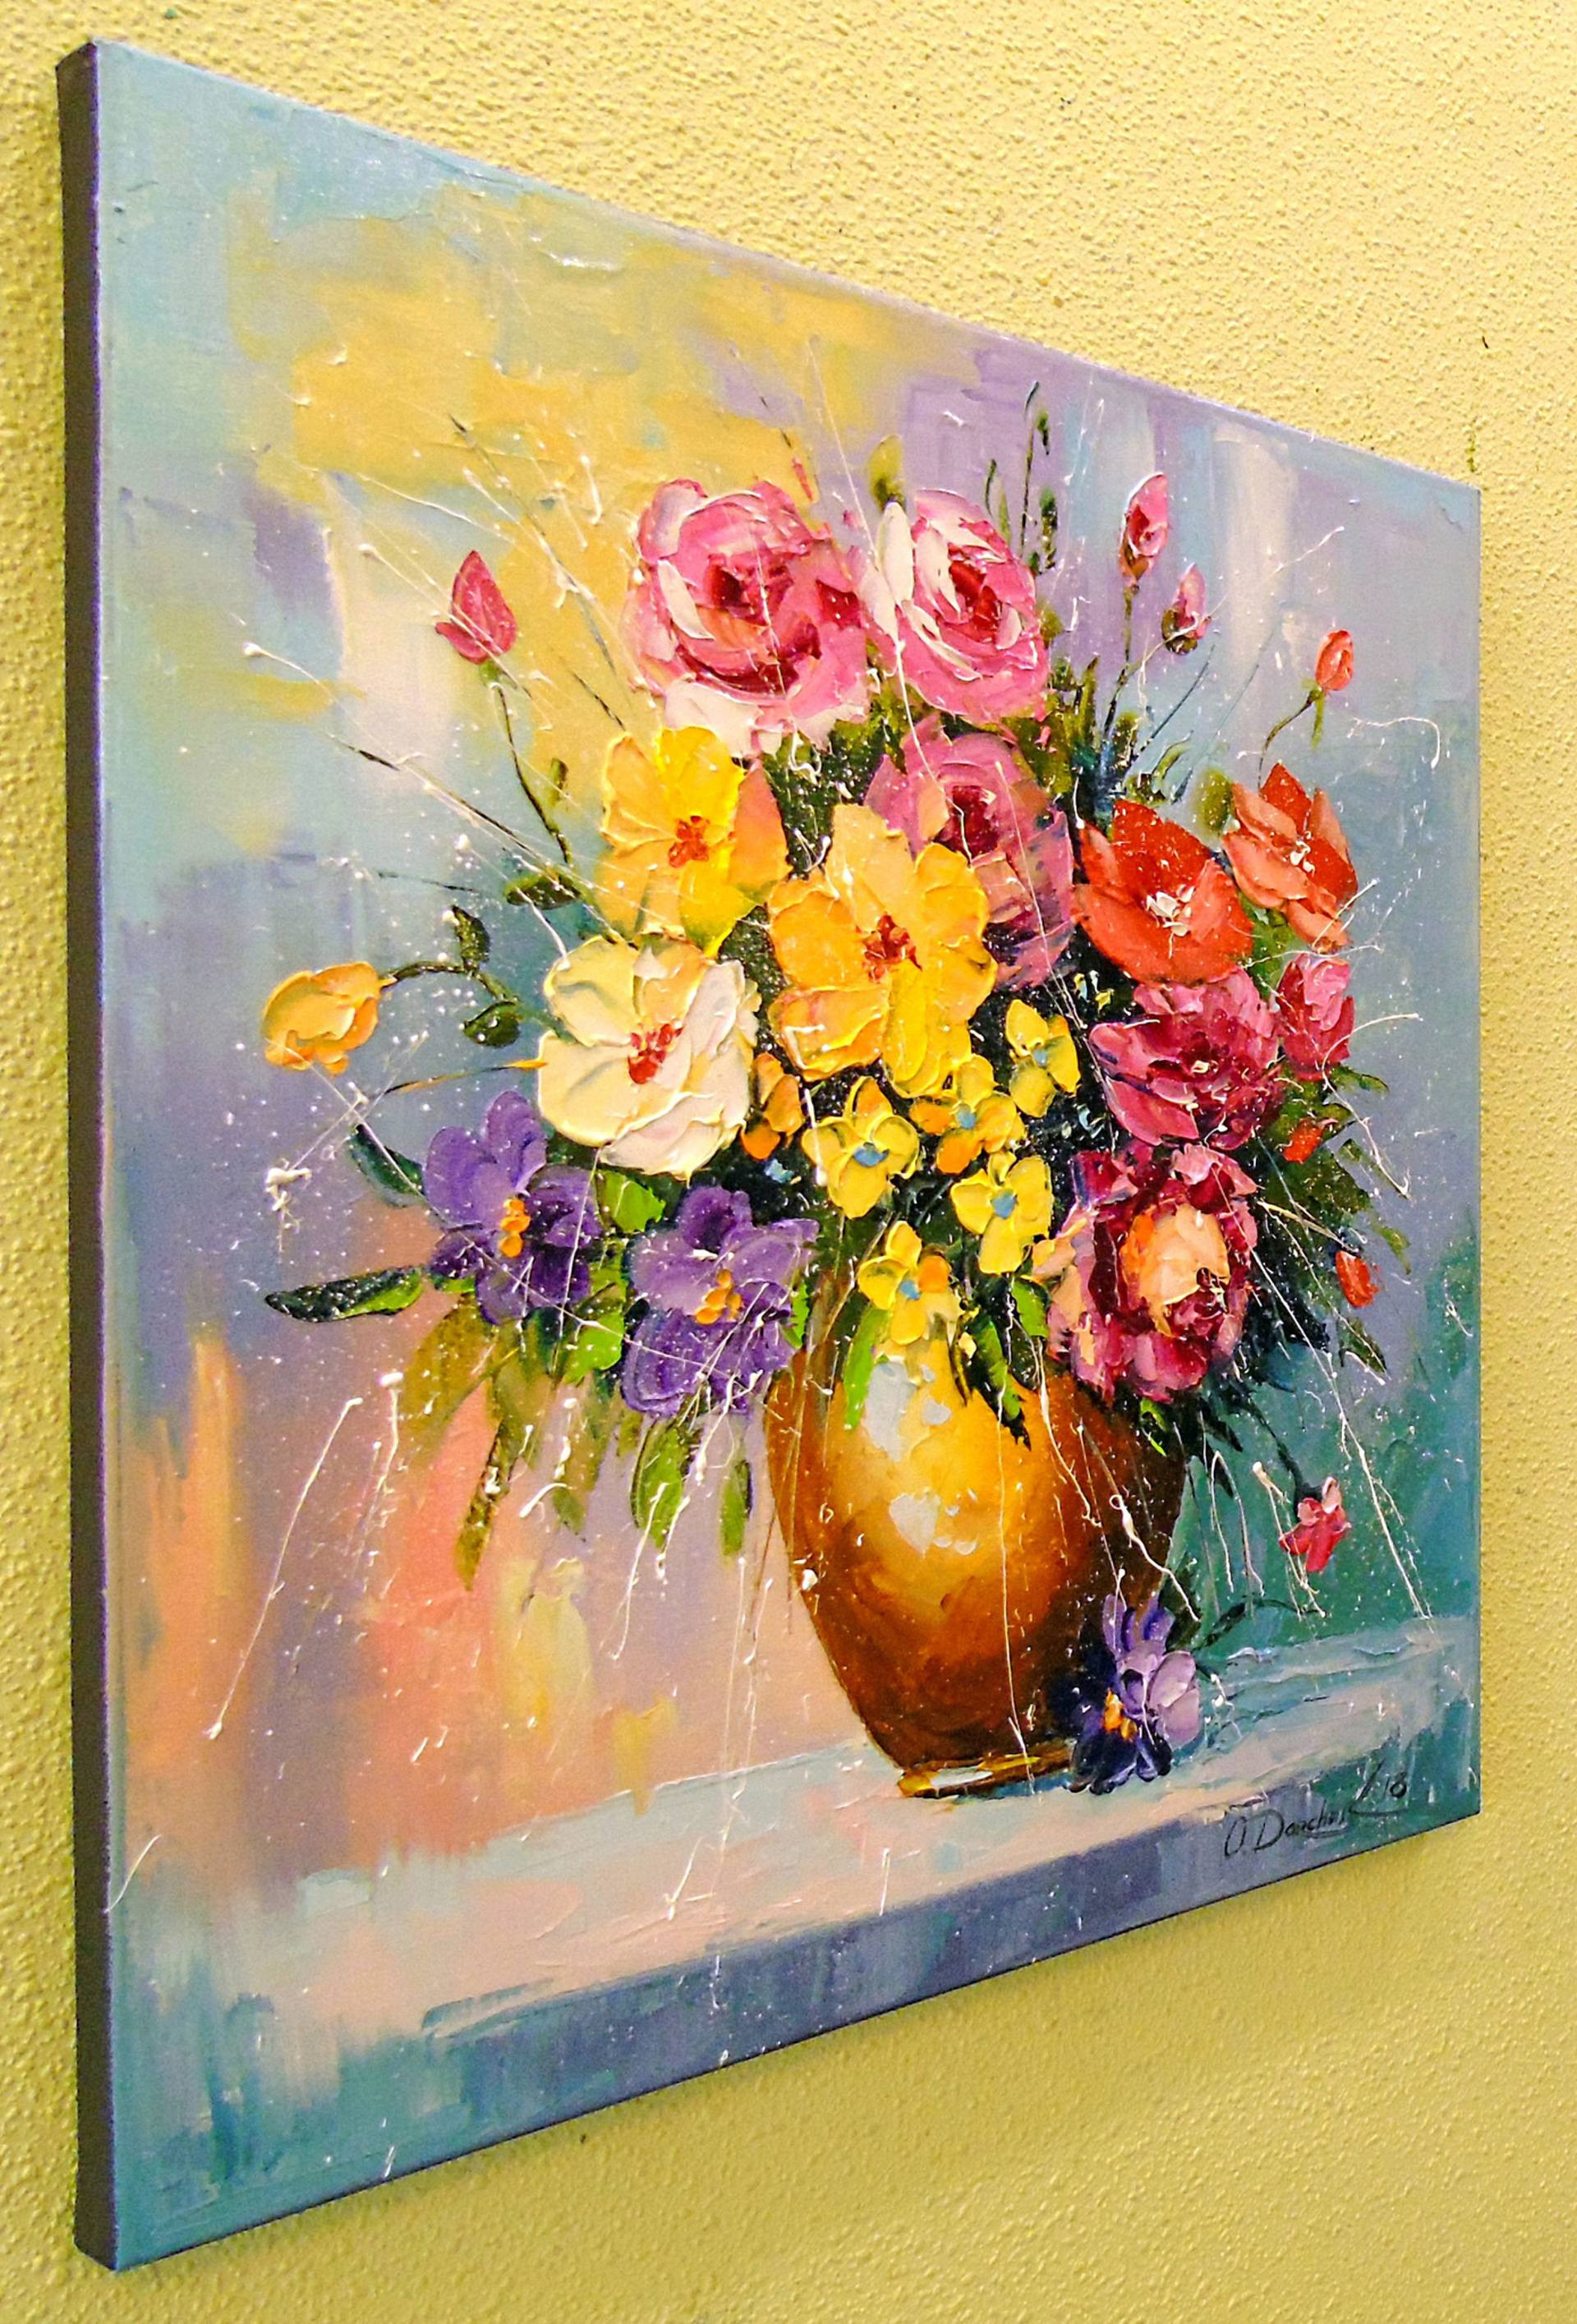 flowers in vase acrylic paintings of bouquet of summer flowers in a vase painting by olha darchuk inside view fullscreen